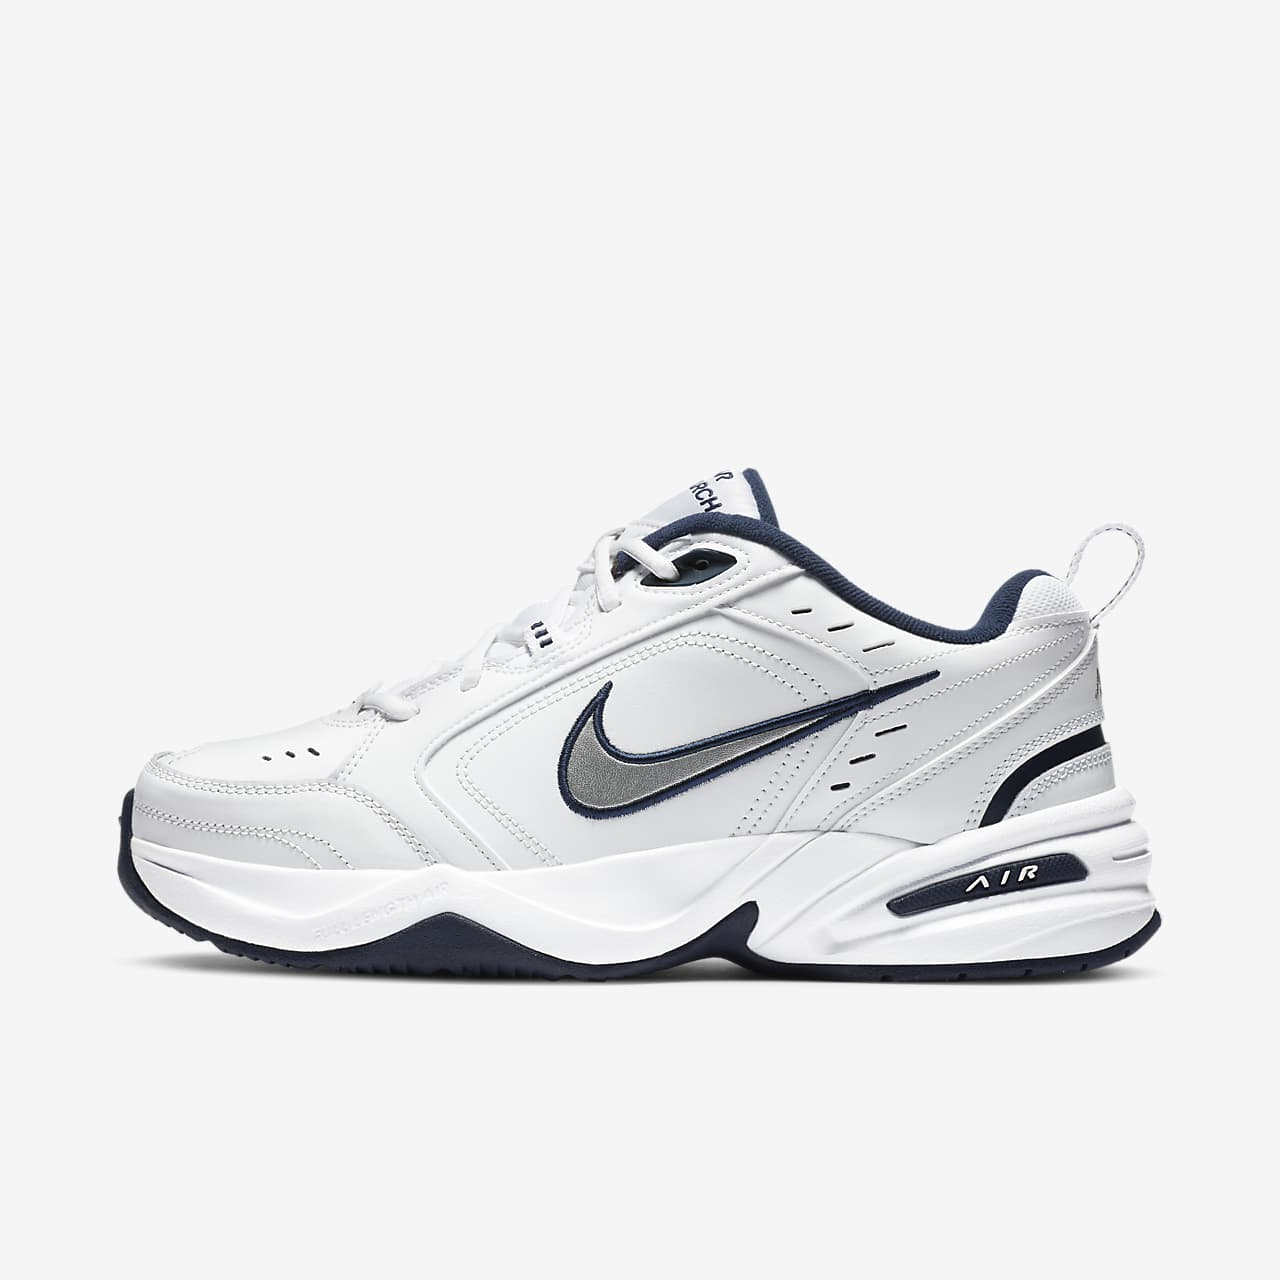 premium selection 627a2 b24fa Nike Air Monarch IV